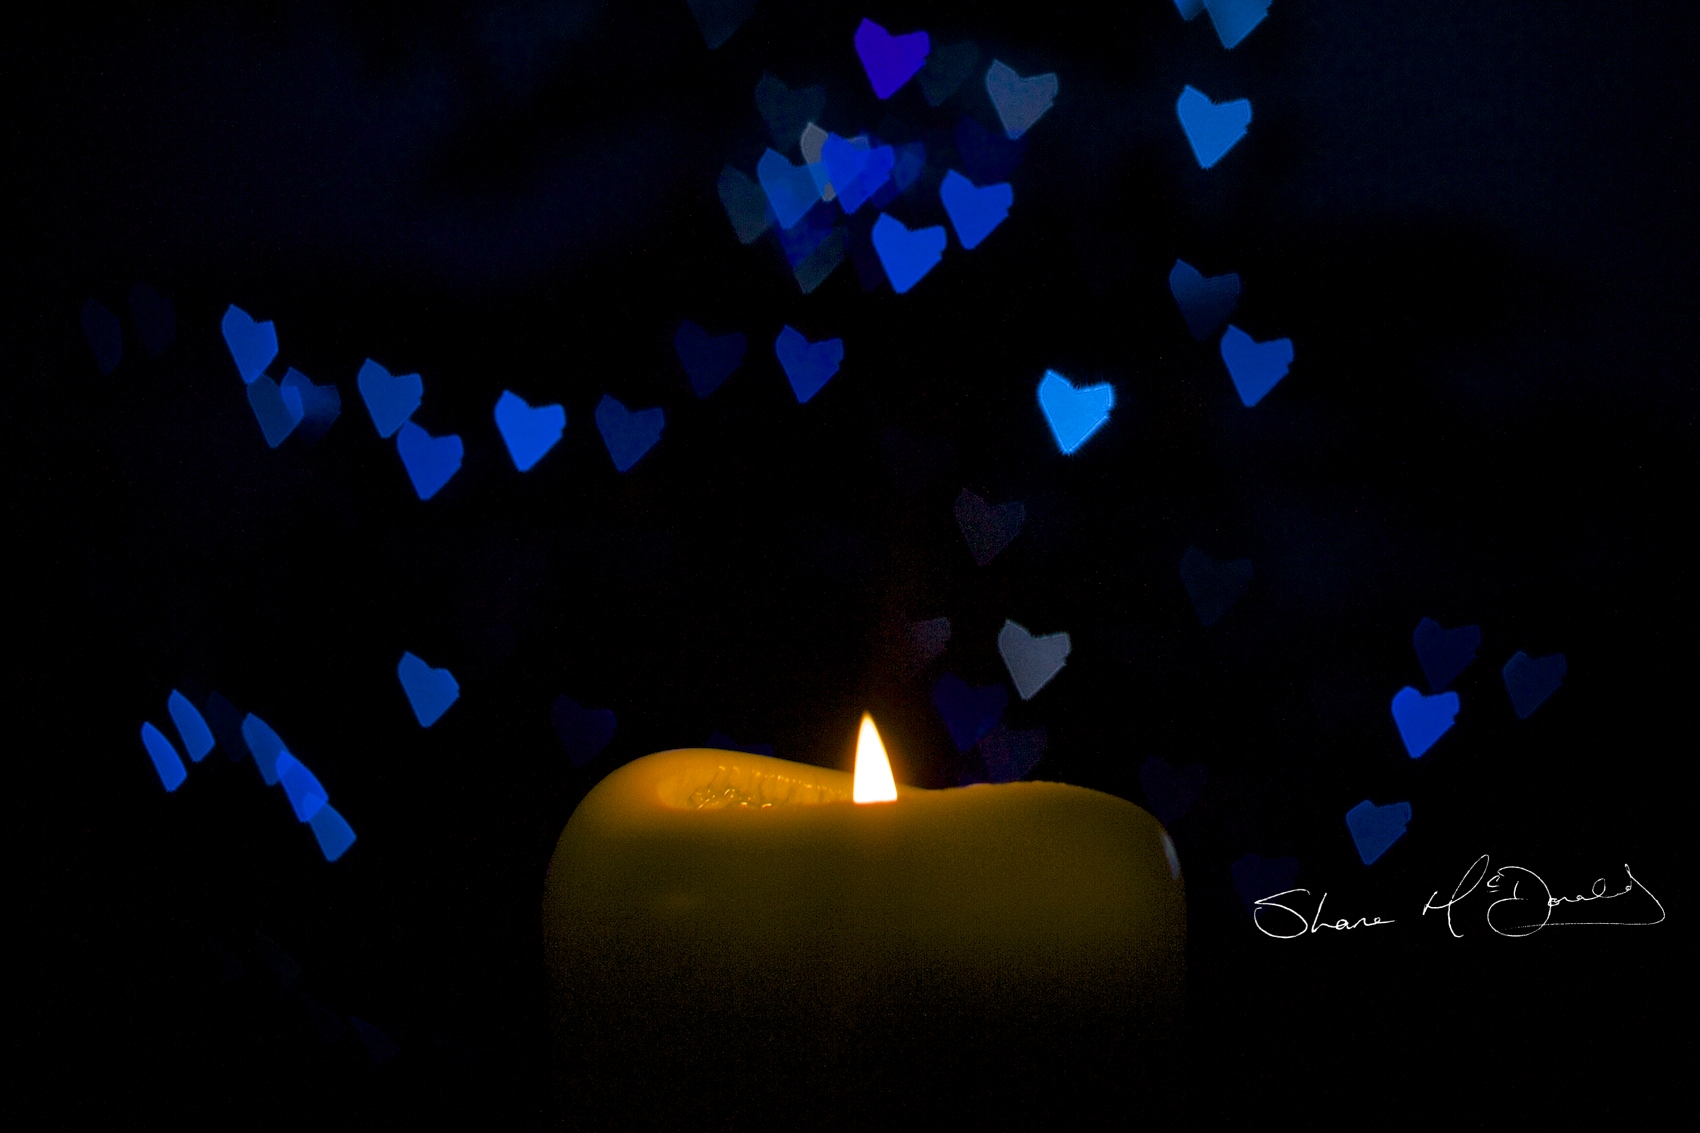 Heart Shaped Bokeh - Creating Custom Bokeh, Aperture Shapes - Making Heart Shaped Custom Bokeh